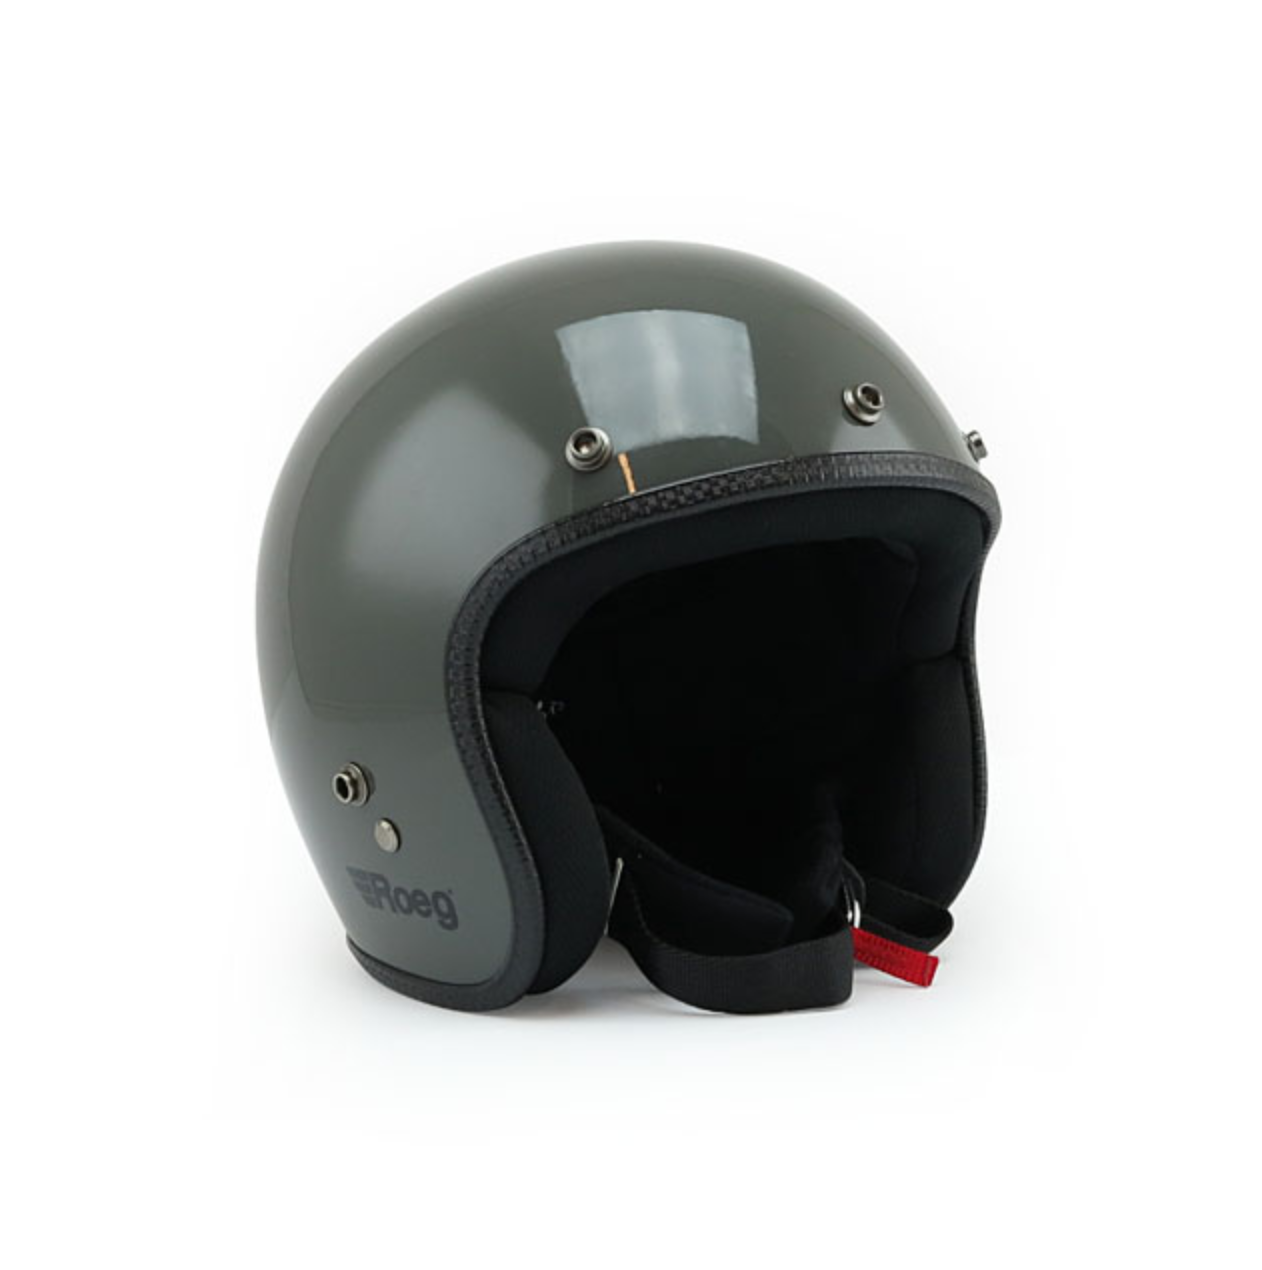 ROEG JETT HELMET - Dutch on Wheels